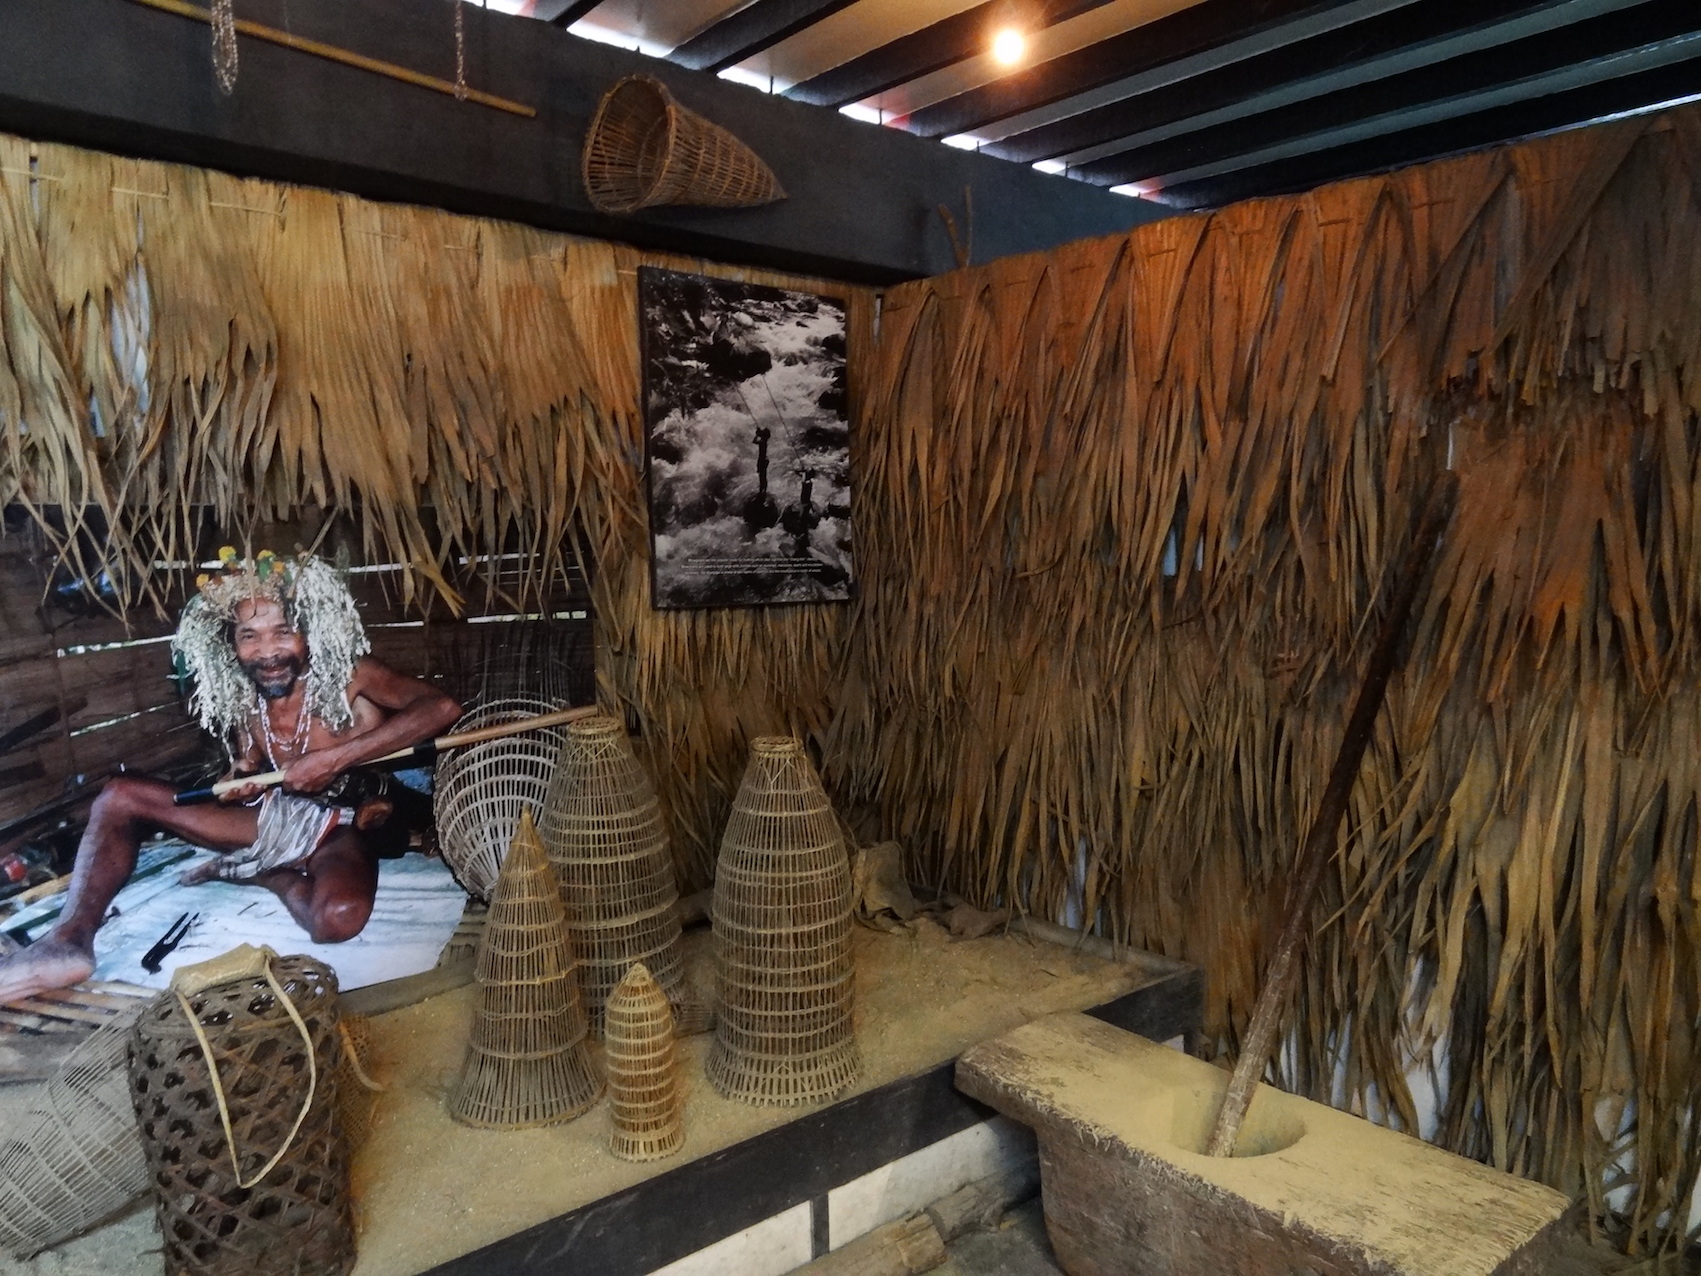 Discover how it was in Cameron Highlands. Time Tunnel's exhibits include aspects of the indigenous people who still exist in the jungle - the Orang Asli.